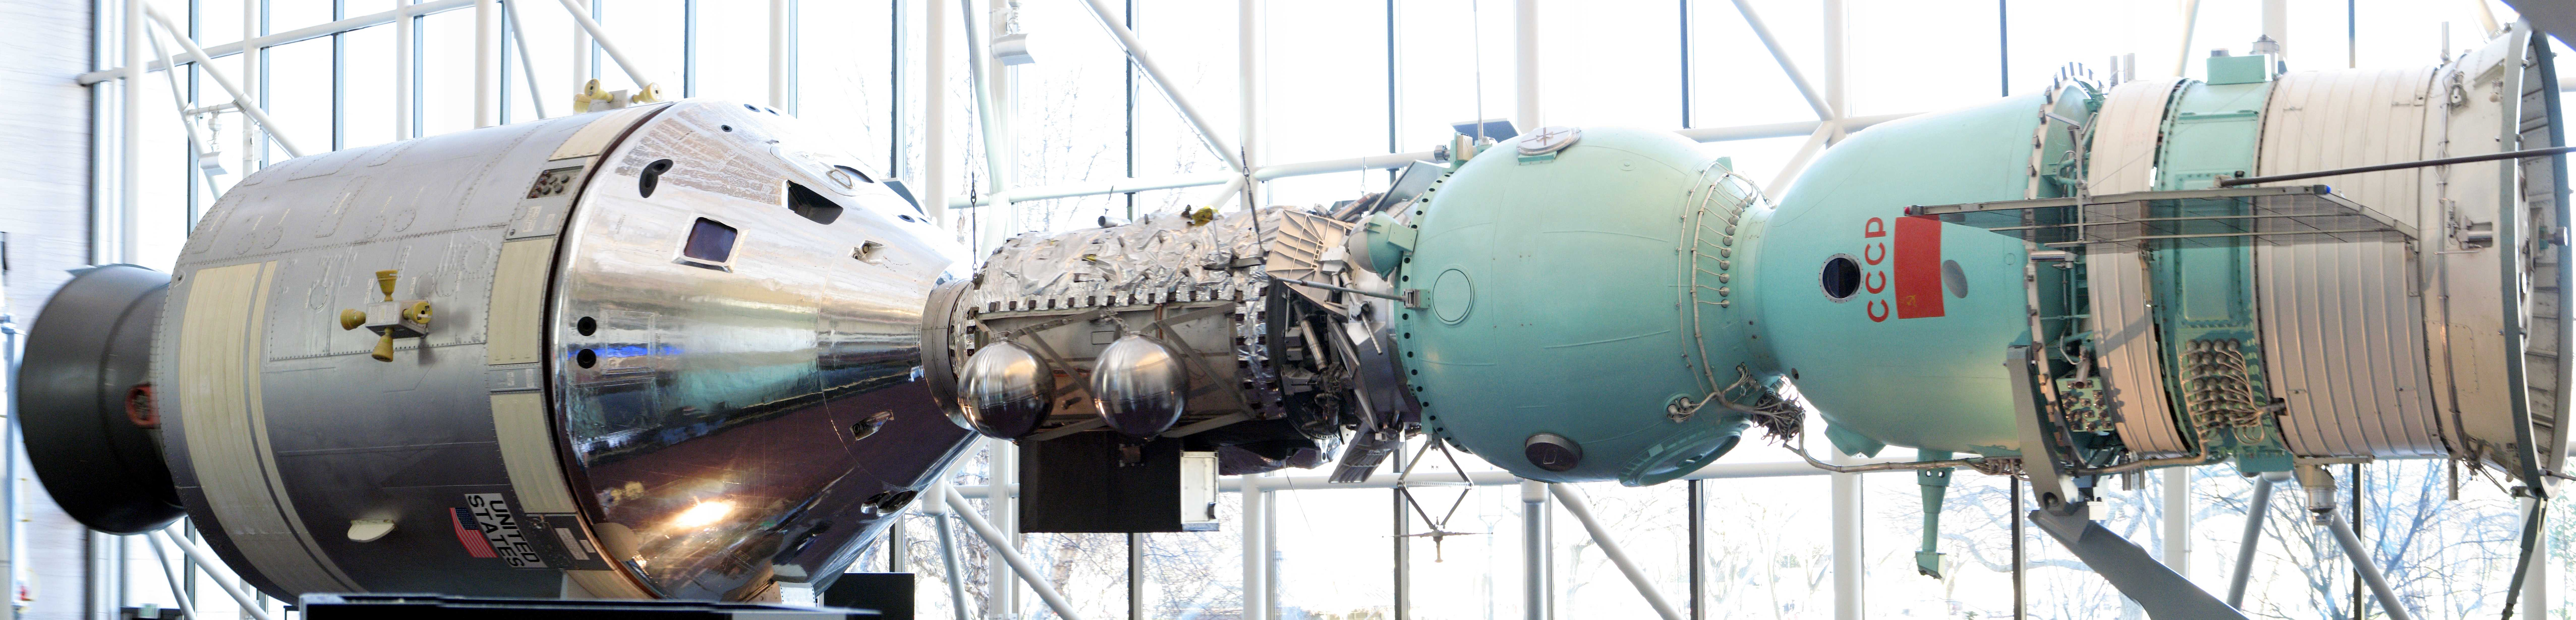 Apollo-Soyuz Test Project launches with SAM Experiment